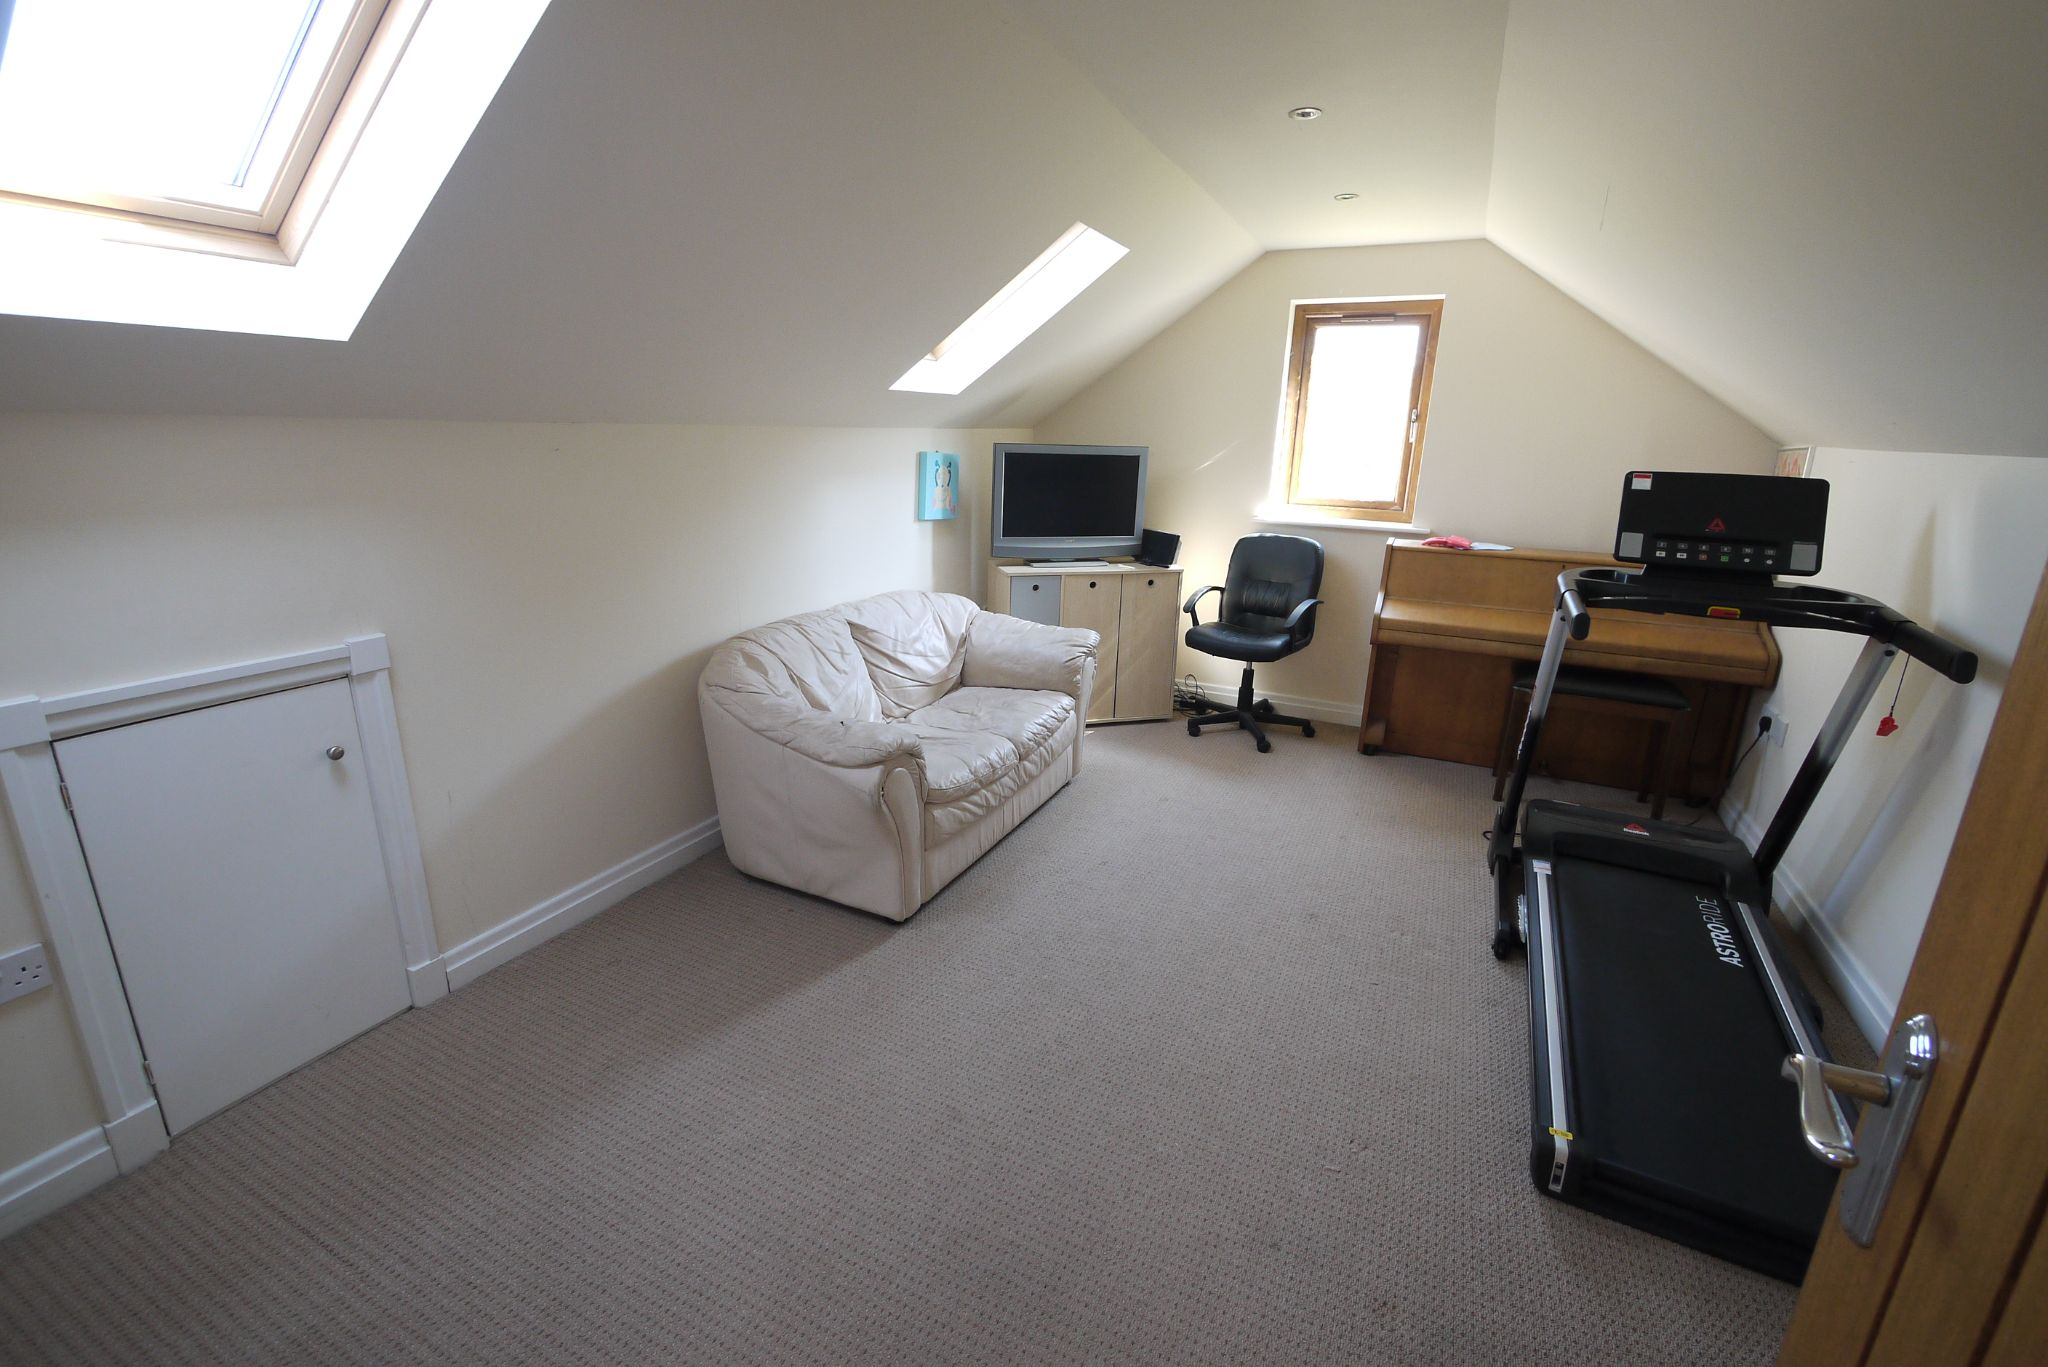 5 bedroom detached house For Sale in Brighouse - Photograph 13.